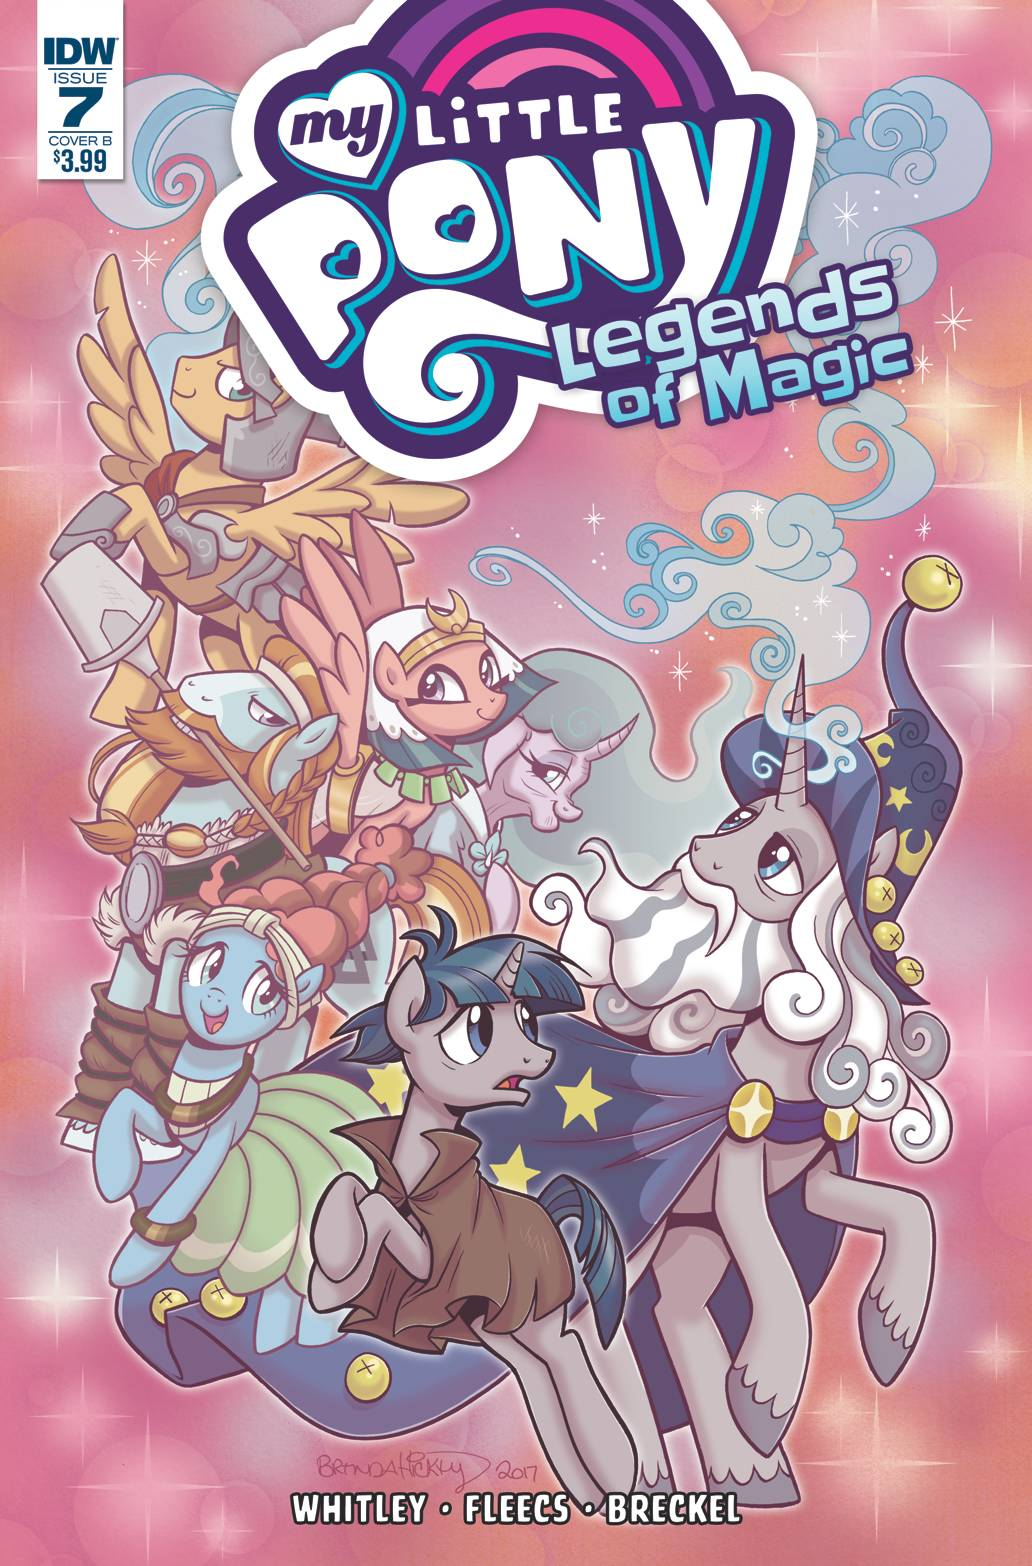 my little pony legends of magic 7 cover b hickey